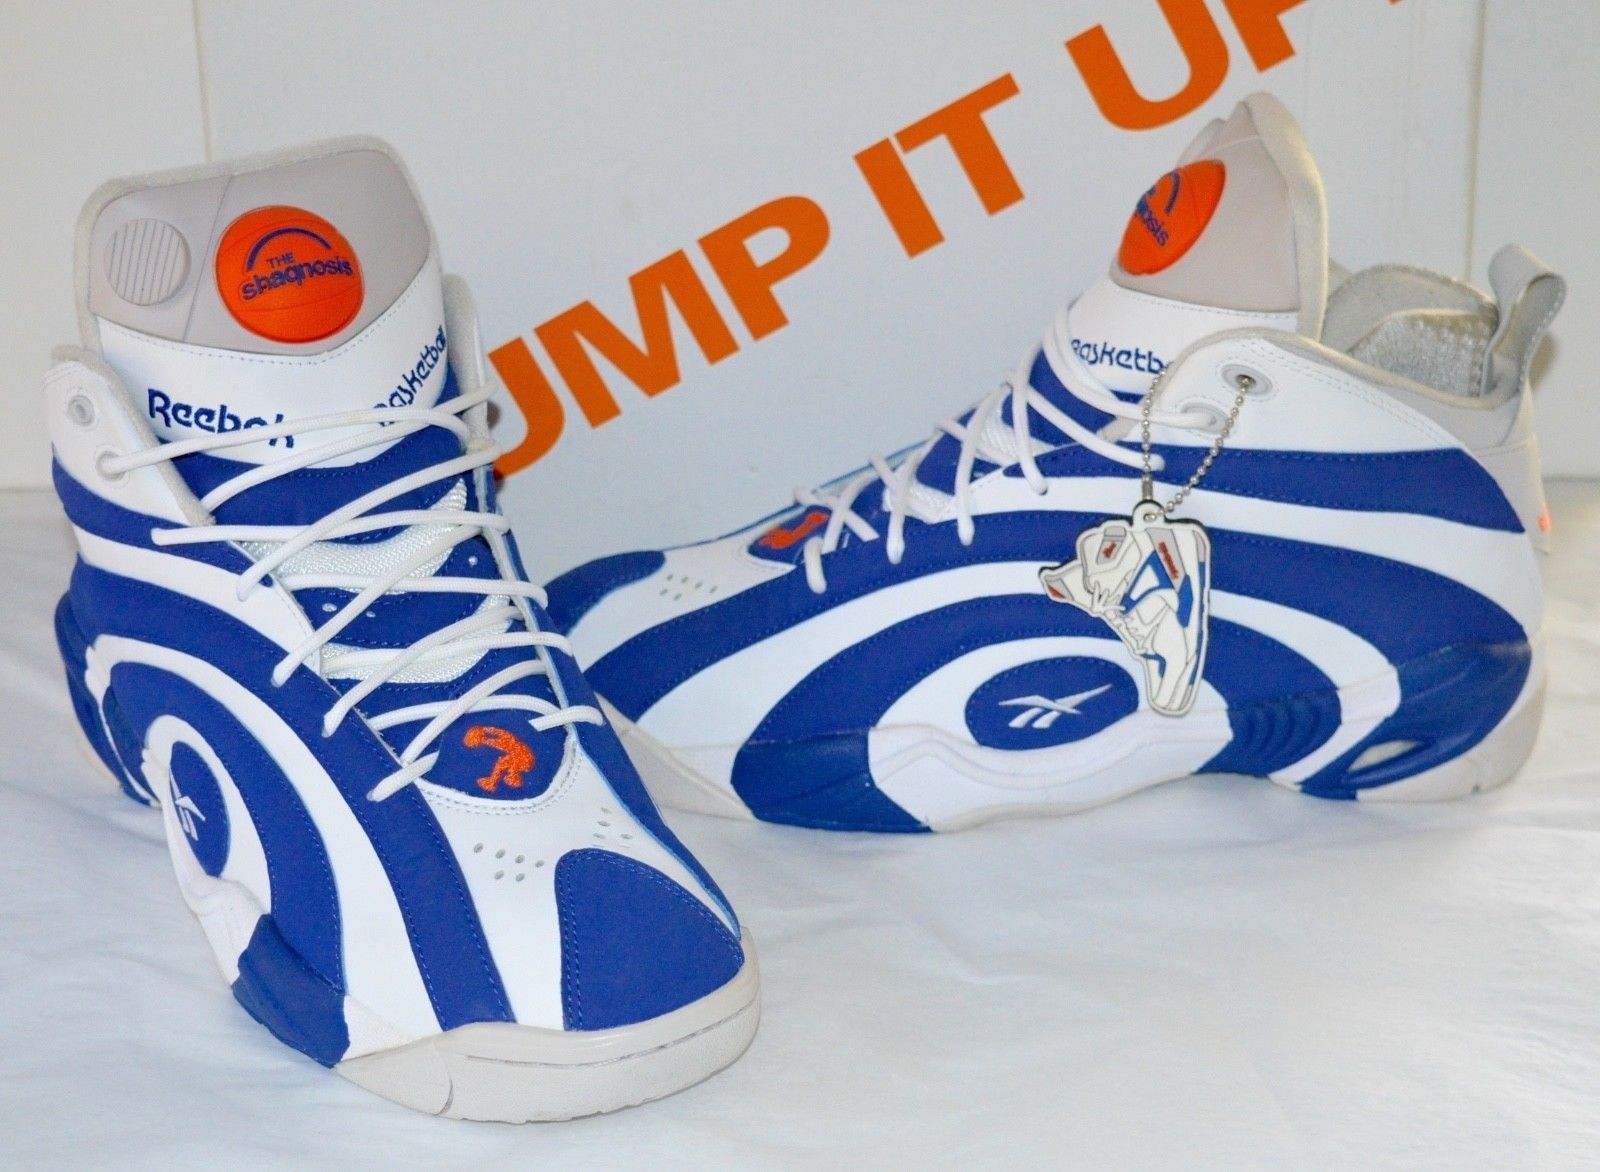 714ab0d39dc3 Details about NDS Reebok Pump Shaqnosis Royal Blue White Grey Flux ...